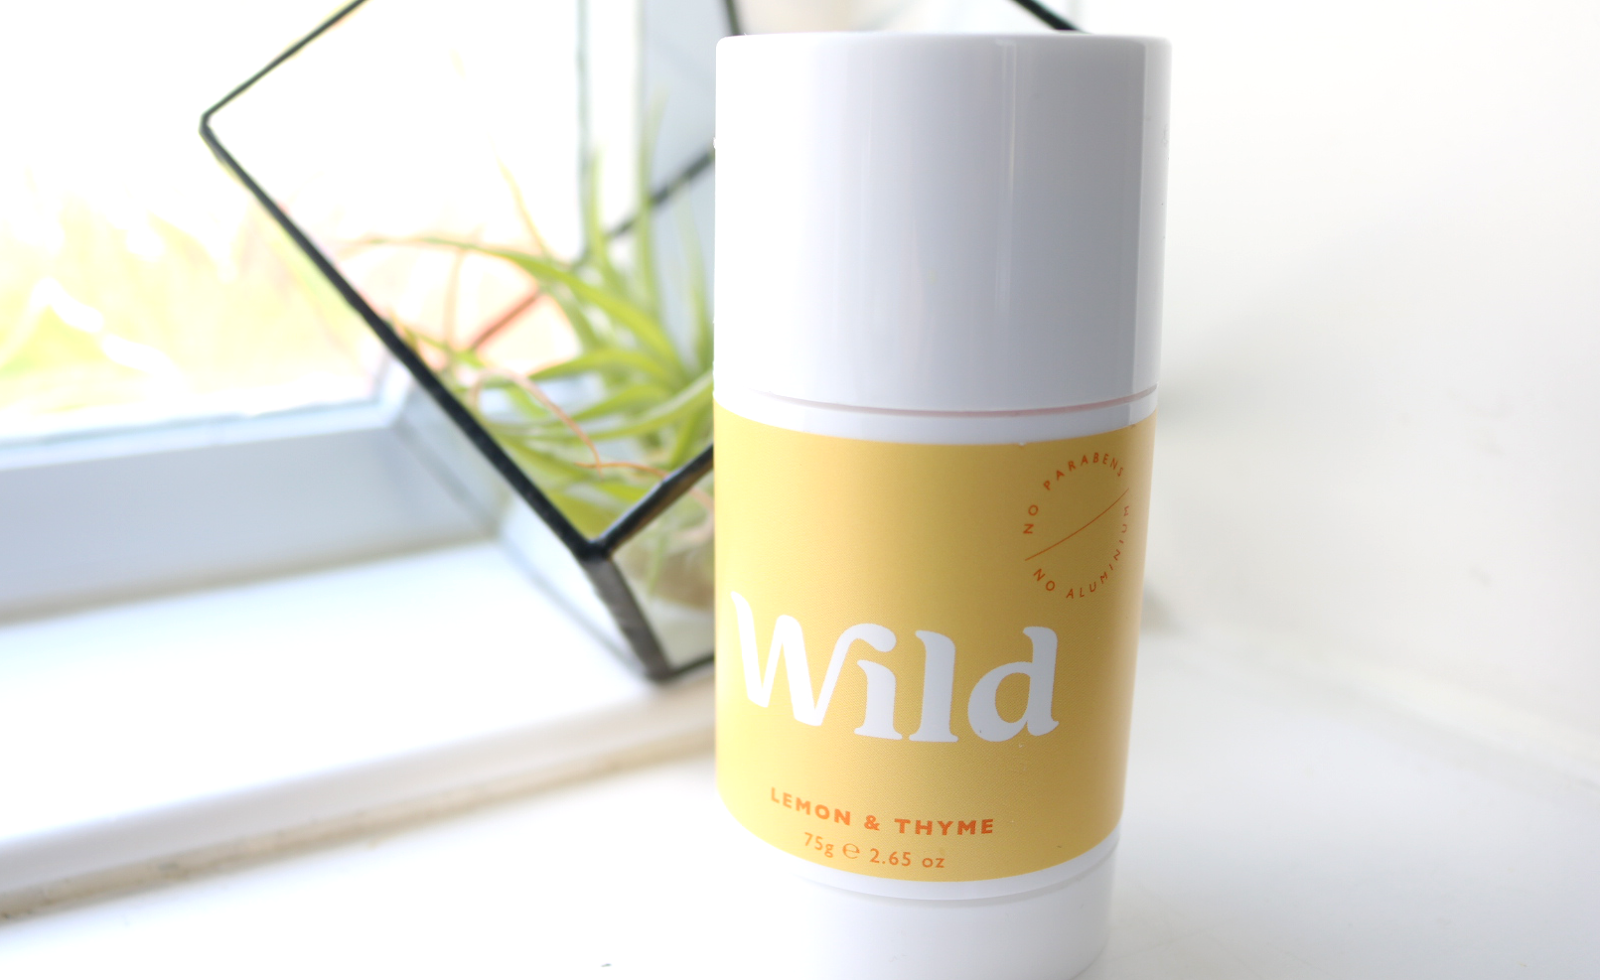 Wild Natural Deodorant in Lemon & Thyme